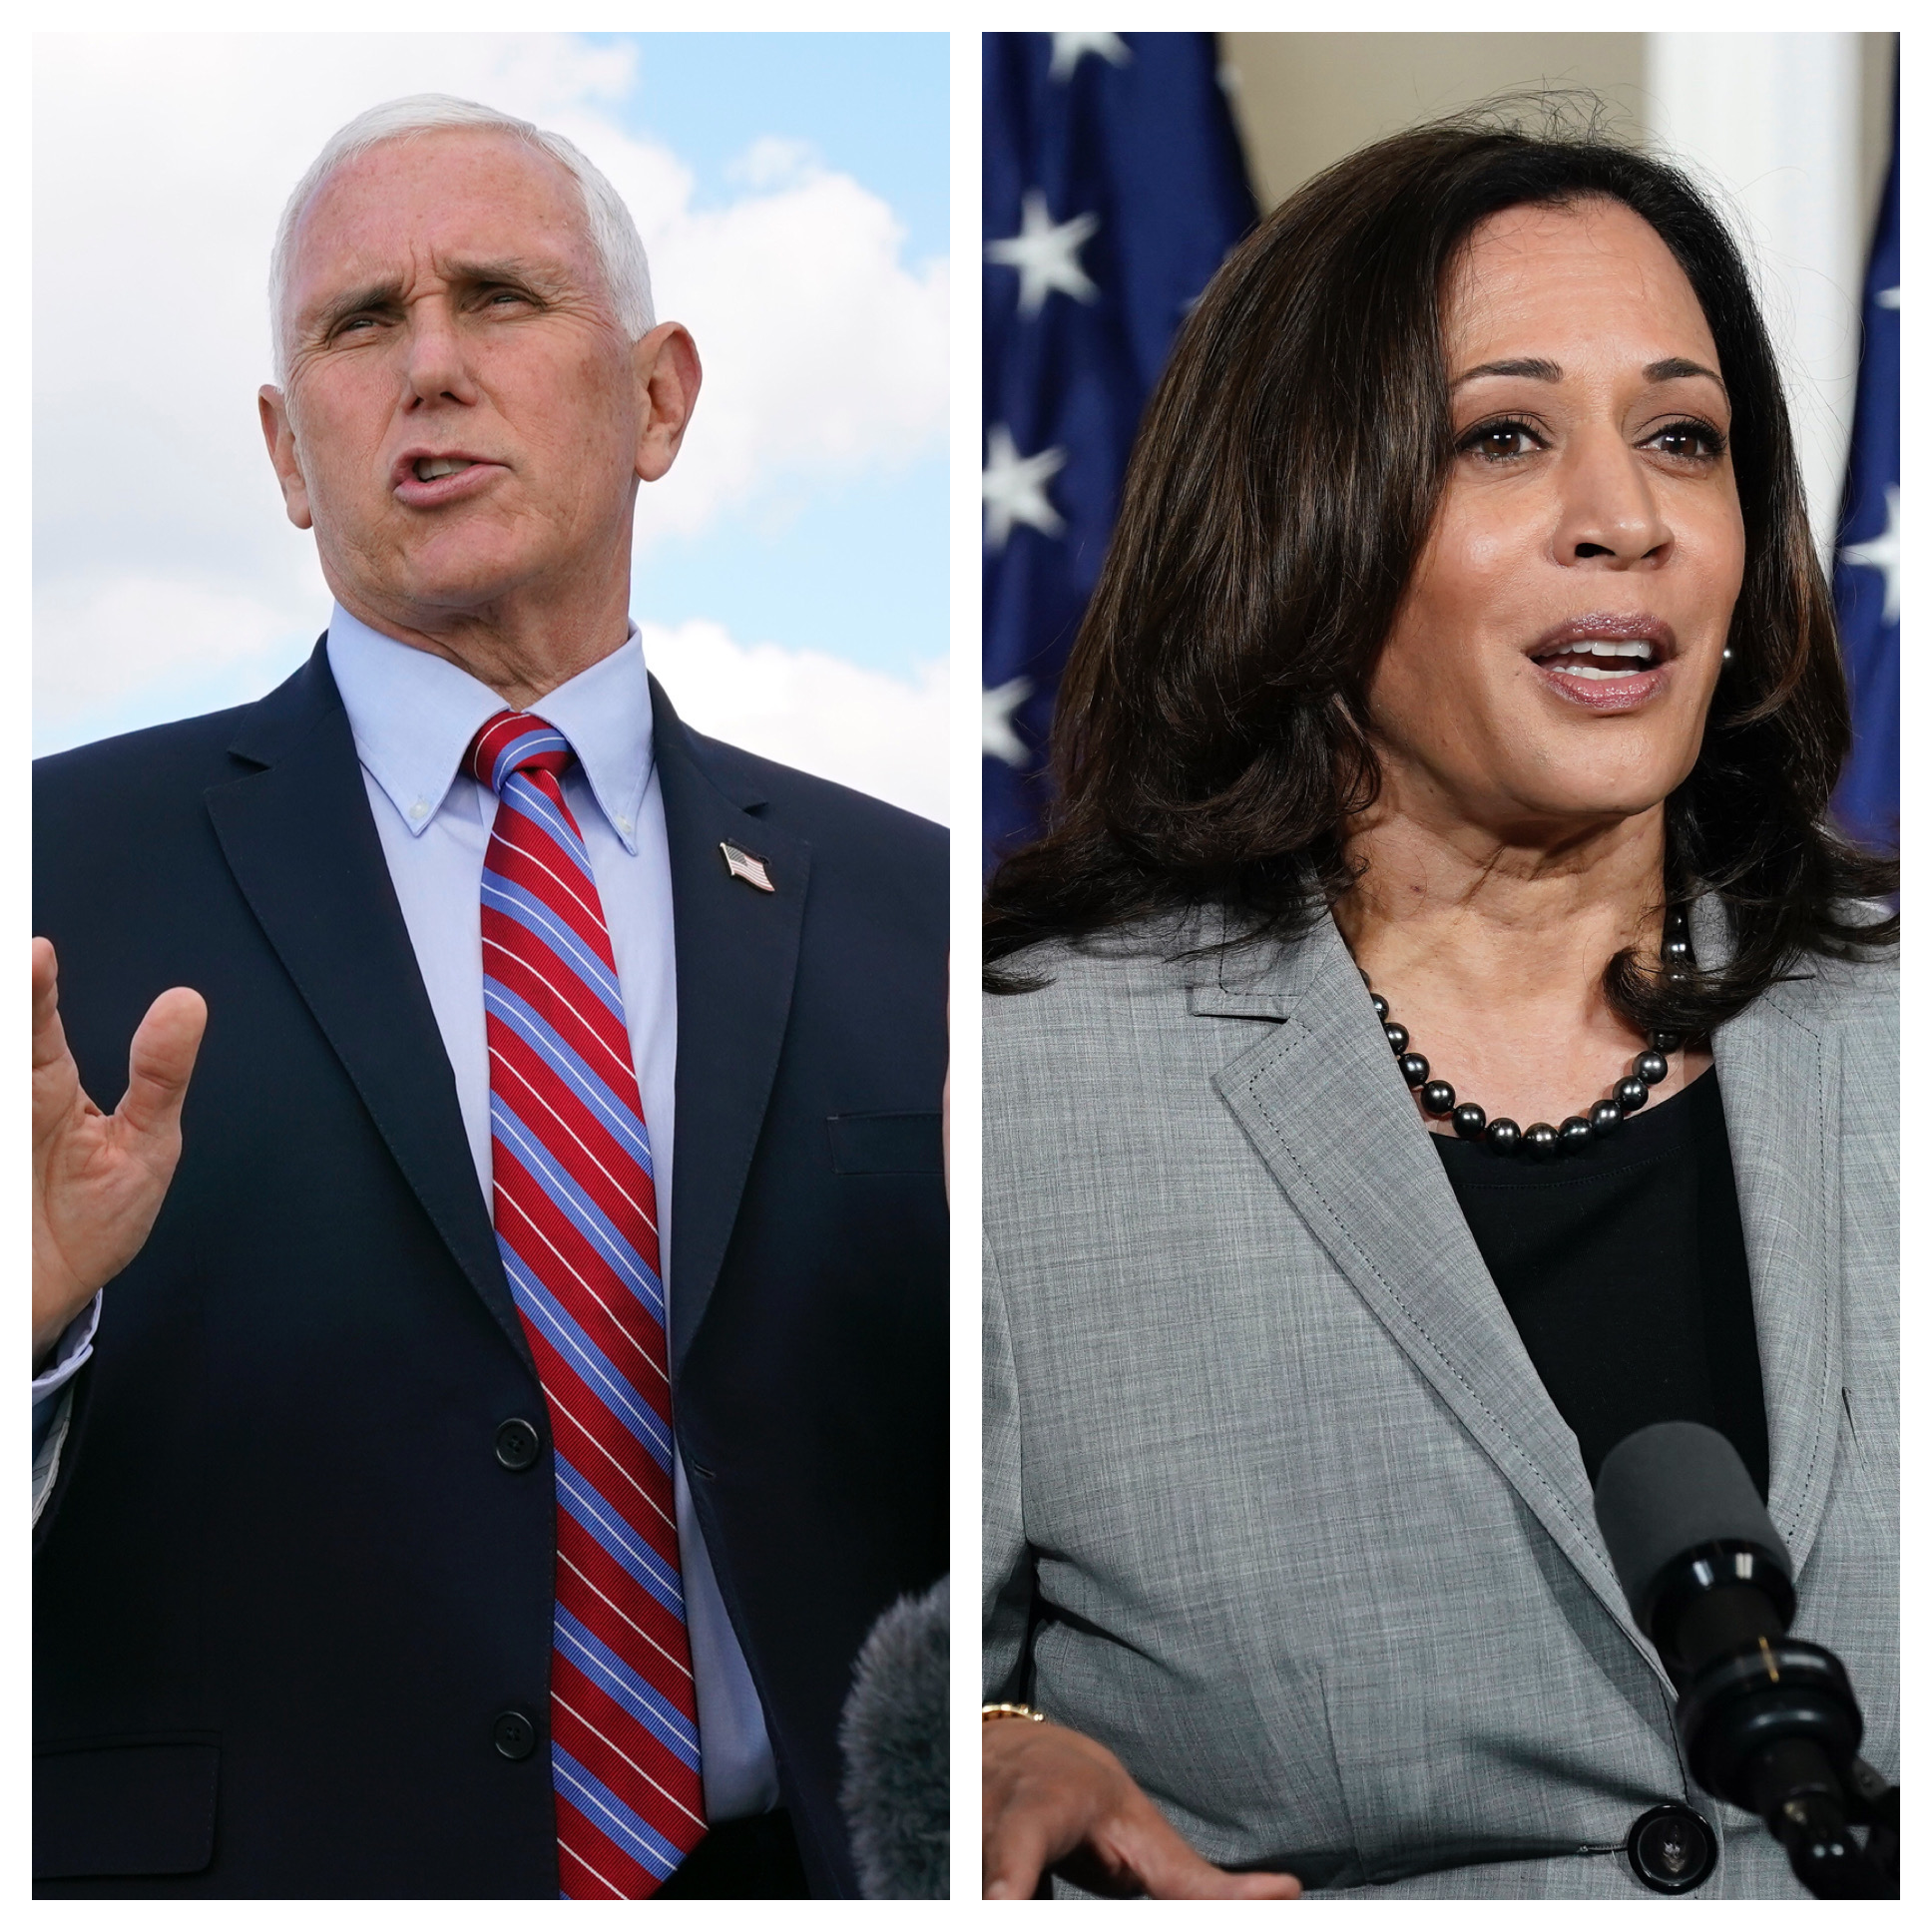 How to Watch the 2020 Vice Presidential Debate